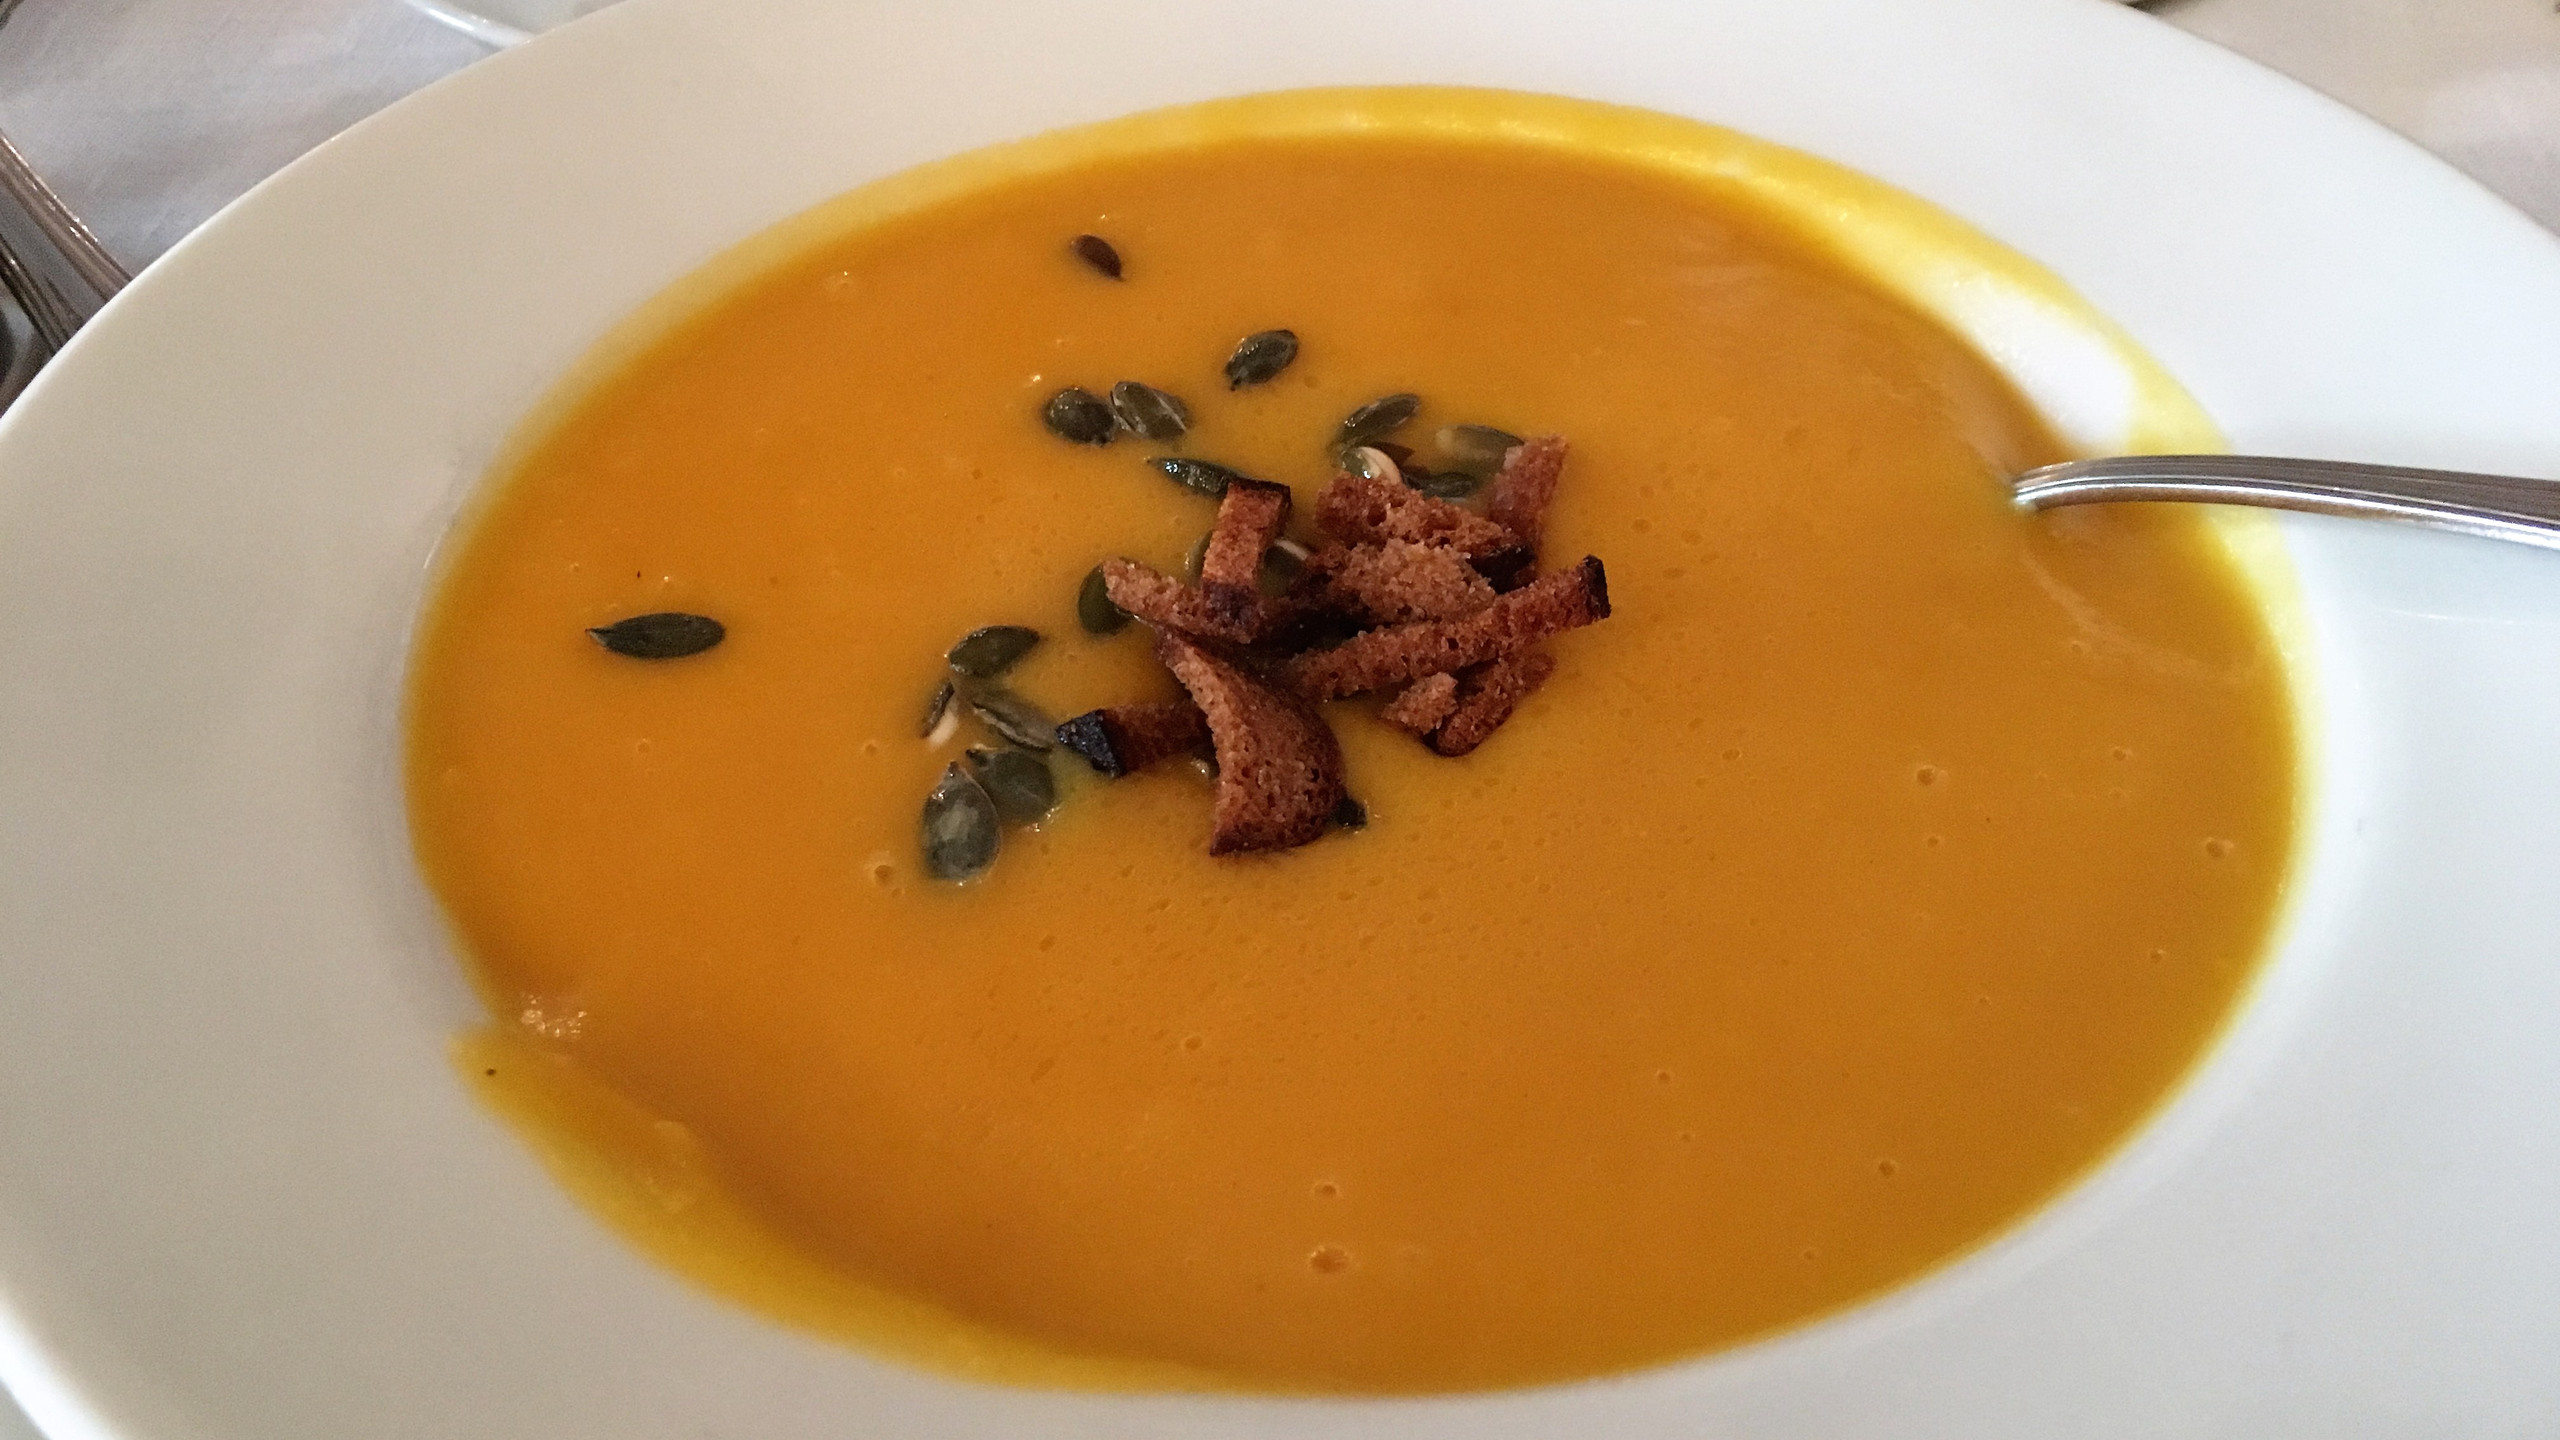 Pumpkin soup with truffle oil.